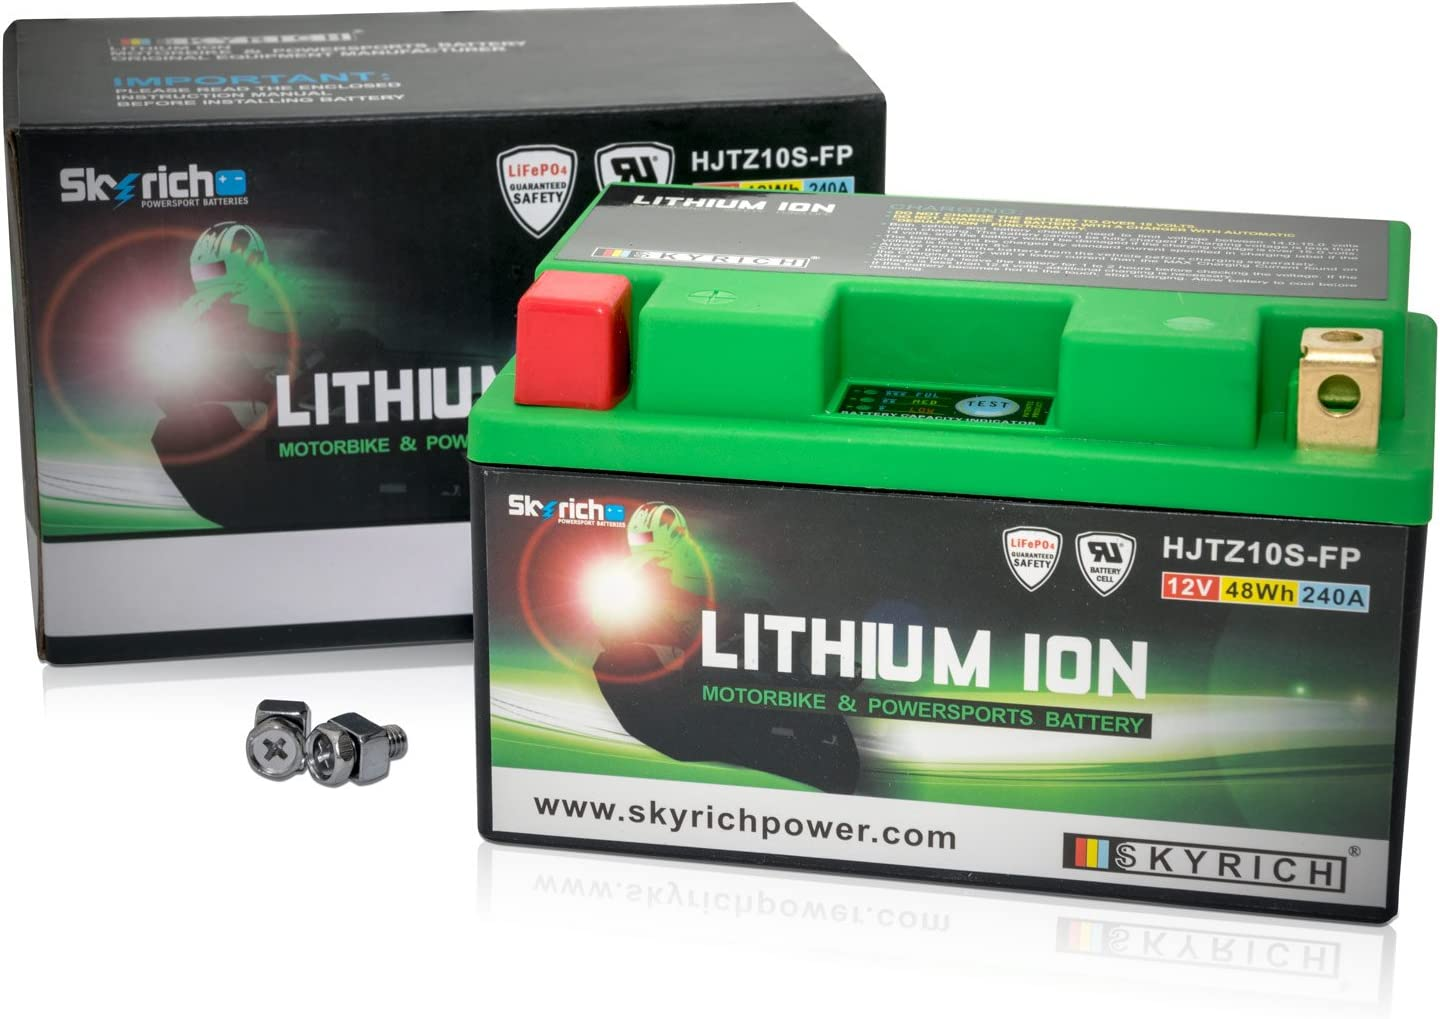 Skyrich HJTZ10S-FP industrial rechargeable battery Lithium 12 V